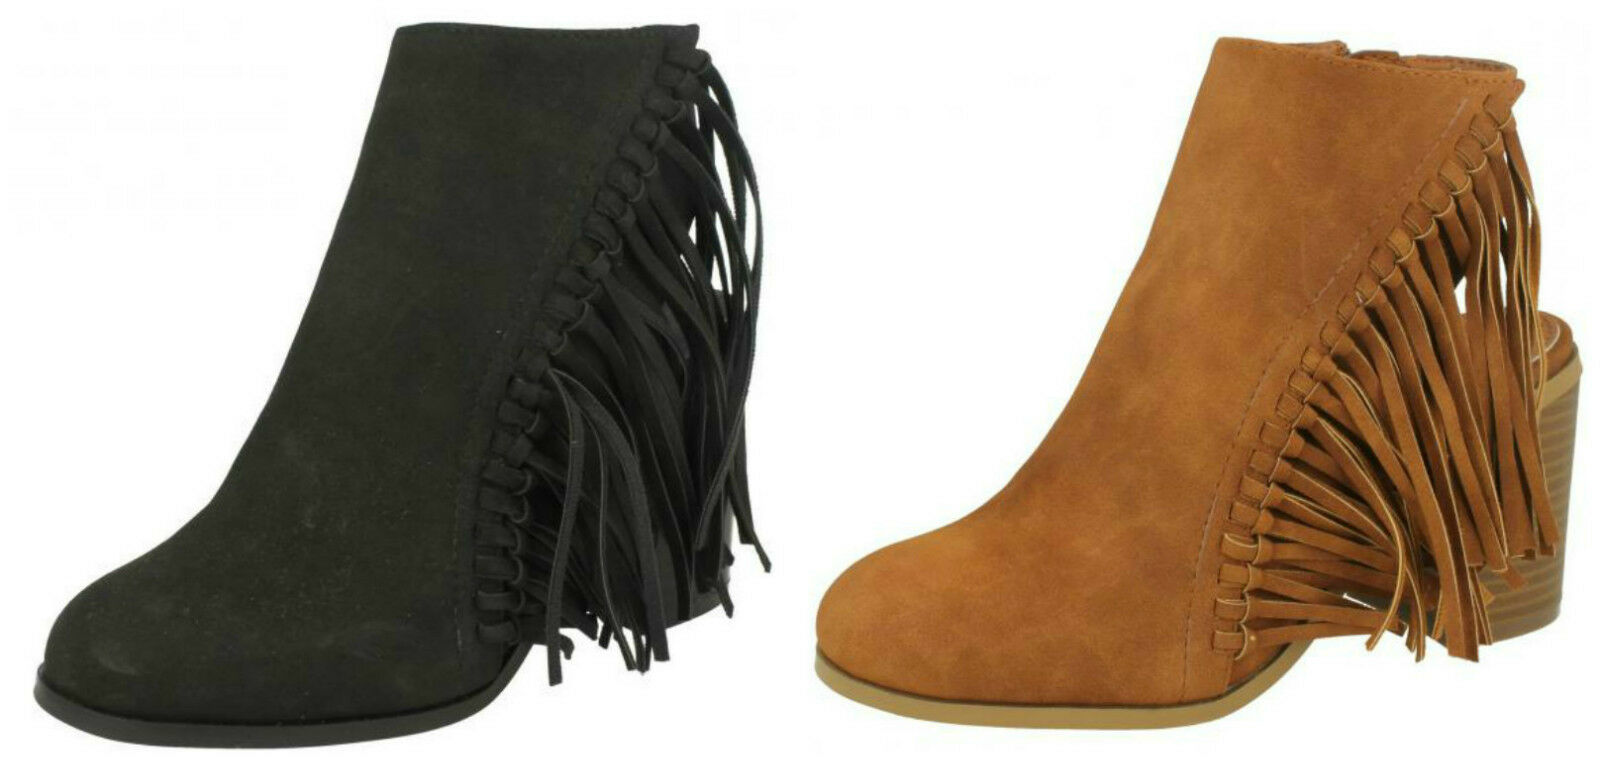 F50489- Ladies Spoton Microfibre Fringe/Tassel Heeled Ankle Boots- 3 Colours!